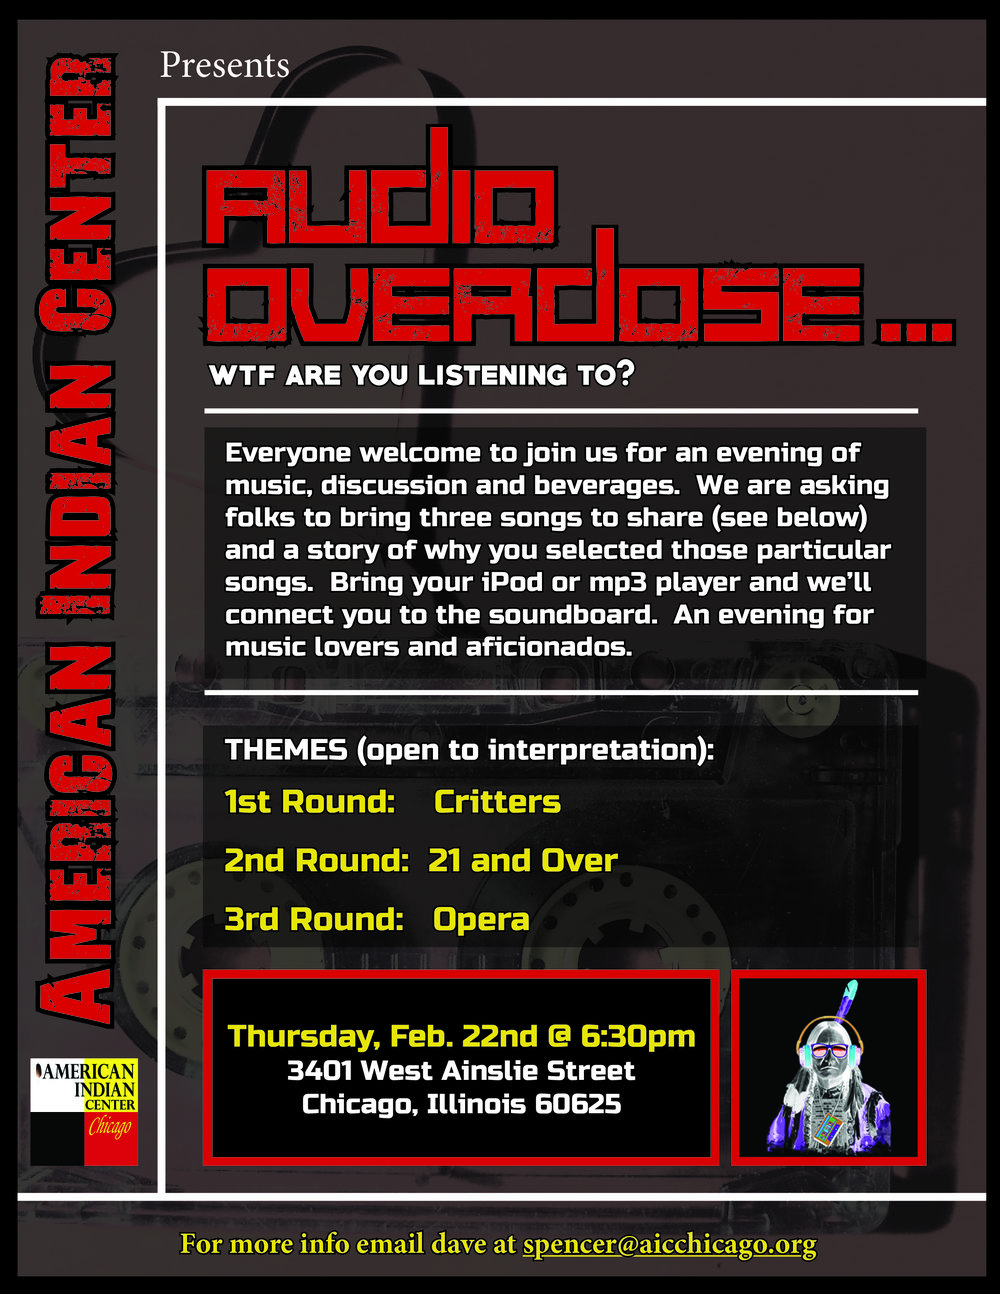 Join us Thursday February 22nd @ 6:30pm for Audio Overdose. Everyone invited! AUDIO OVERDOSE... Join us for an evening of music, discussion and beverages. We are asking folks to bring three songs to share and a story of why you selected those particular songs. Themes will be: 1st Round: Critters 2nd Round: 21 and Over 3rd Round: Opera A really fun night for all music lovers & aficionados! February 22nd at 6:30pm 3401 W. Ainslie St. (2nd Floor) Chicago, IL 60625 For any questions please contact Dave at spencer@aicchicago.org